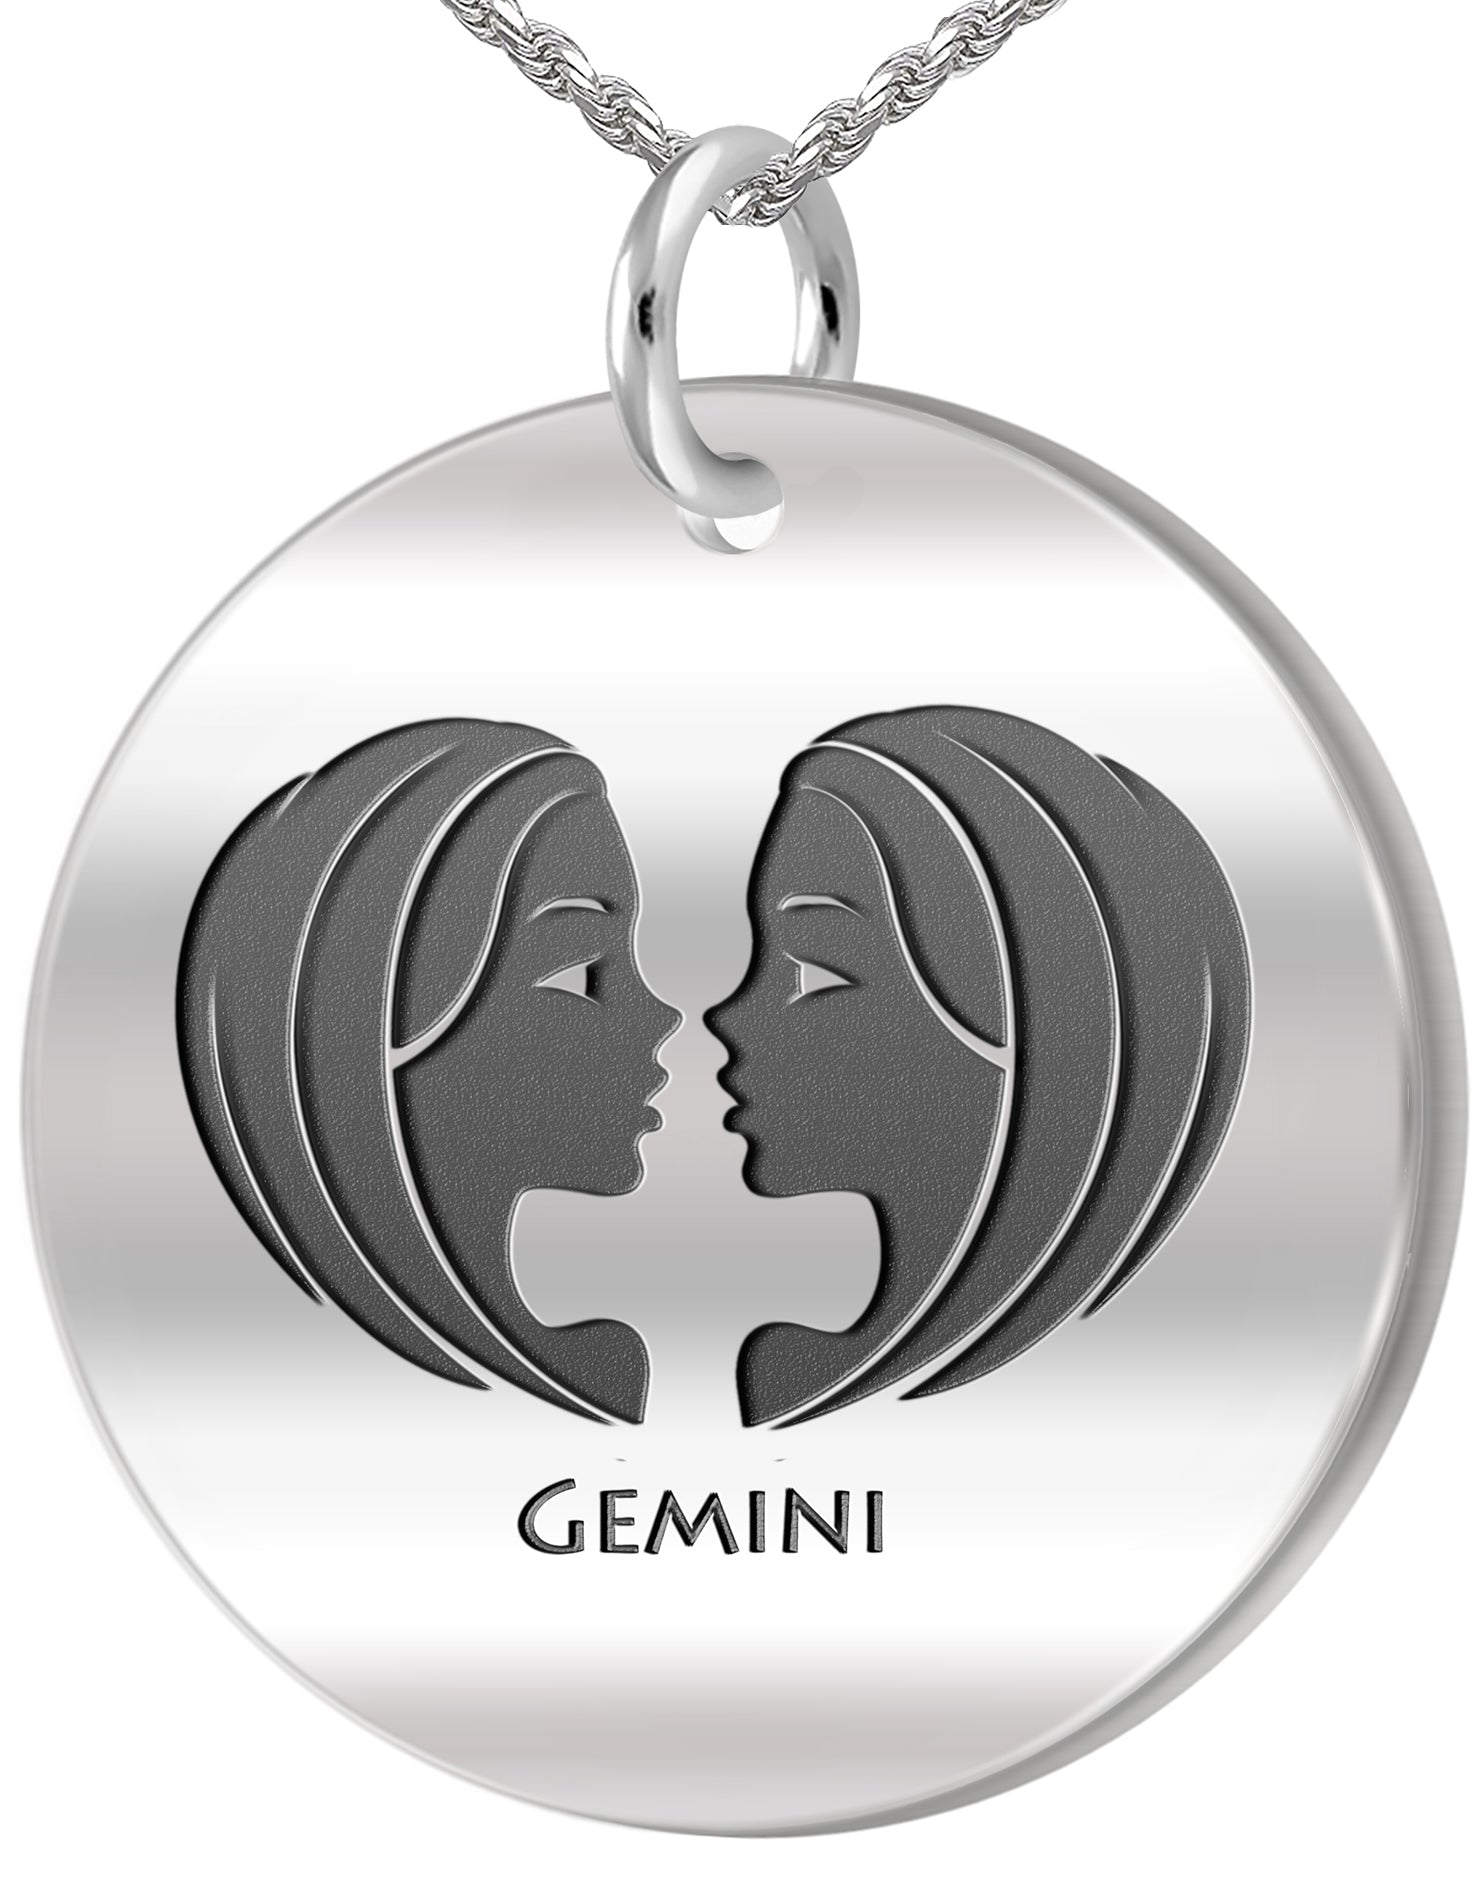 Gemini Necklace - Zodiac Pendant Necklace In Round